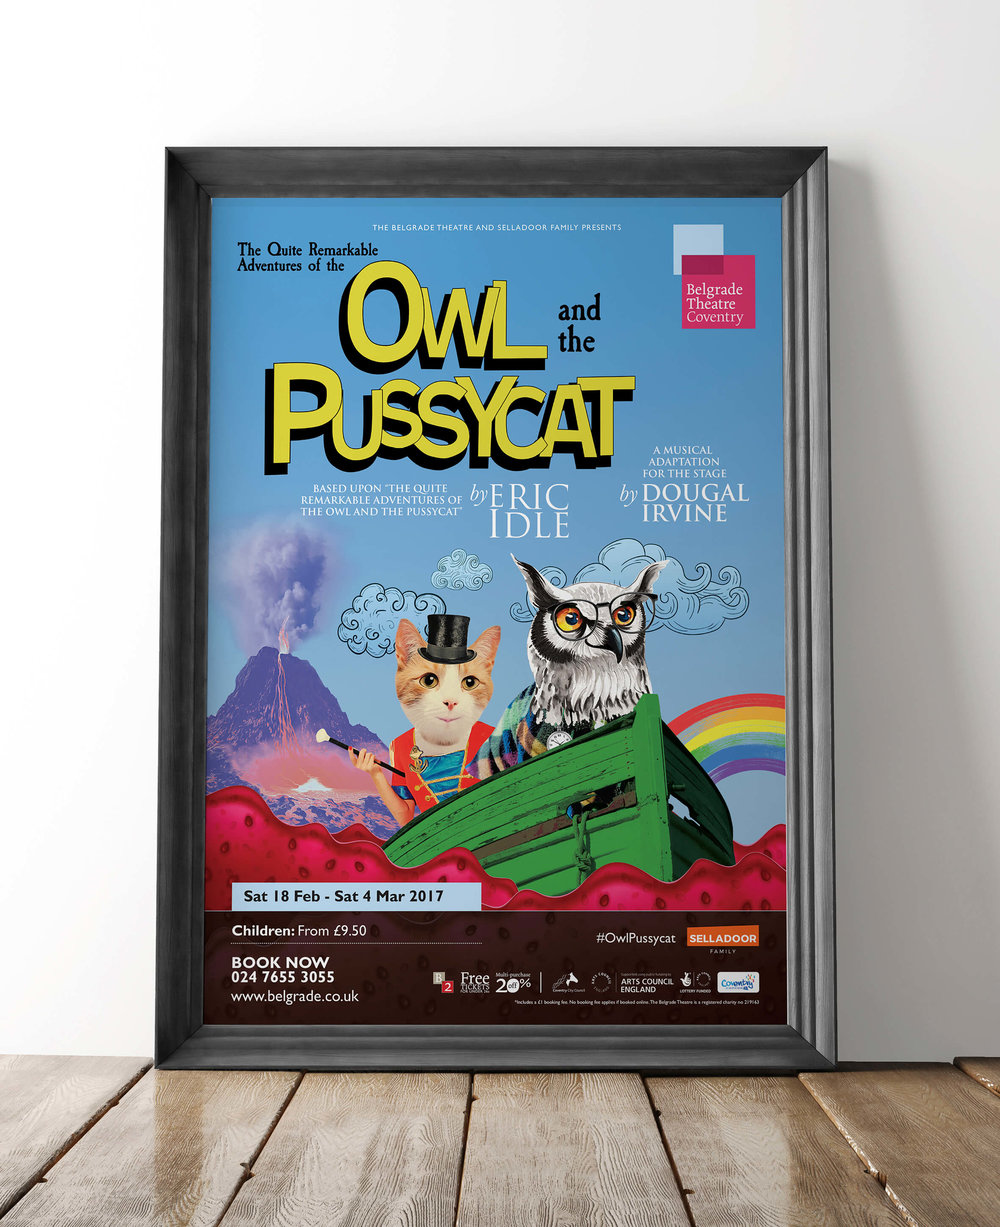 The Quite Remarkable Adventures of the Owl and the Pussycat artwork